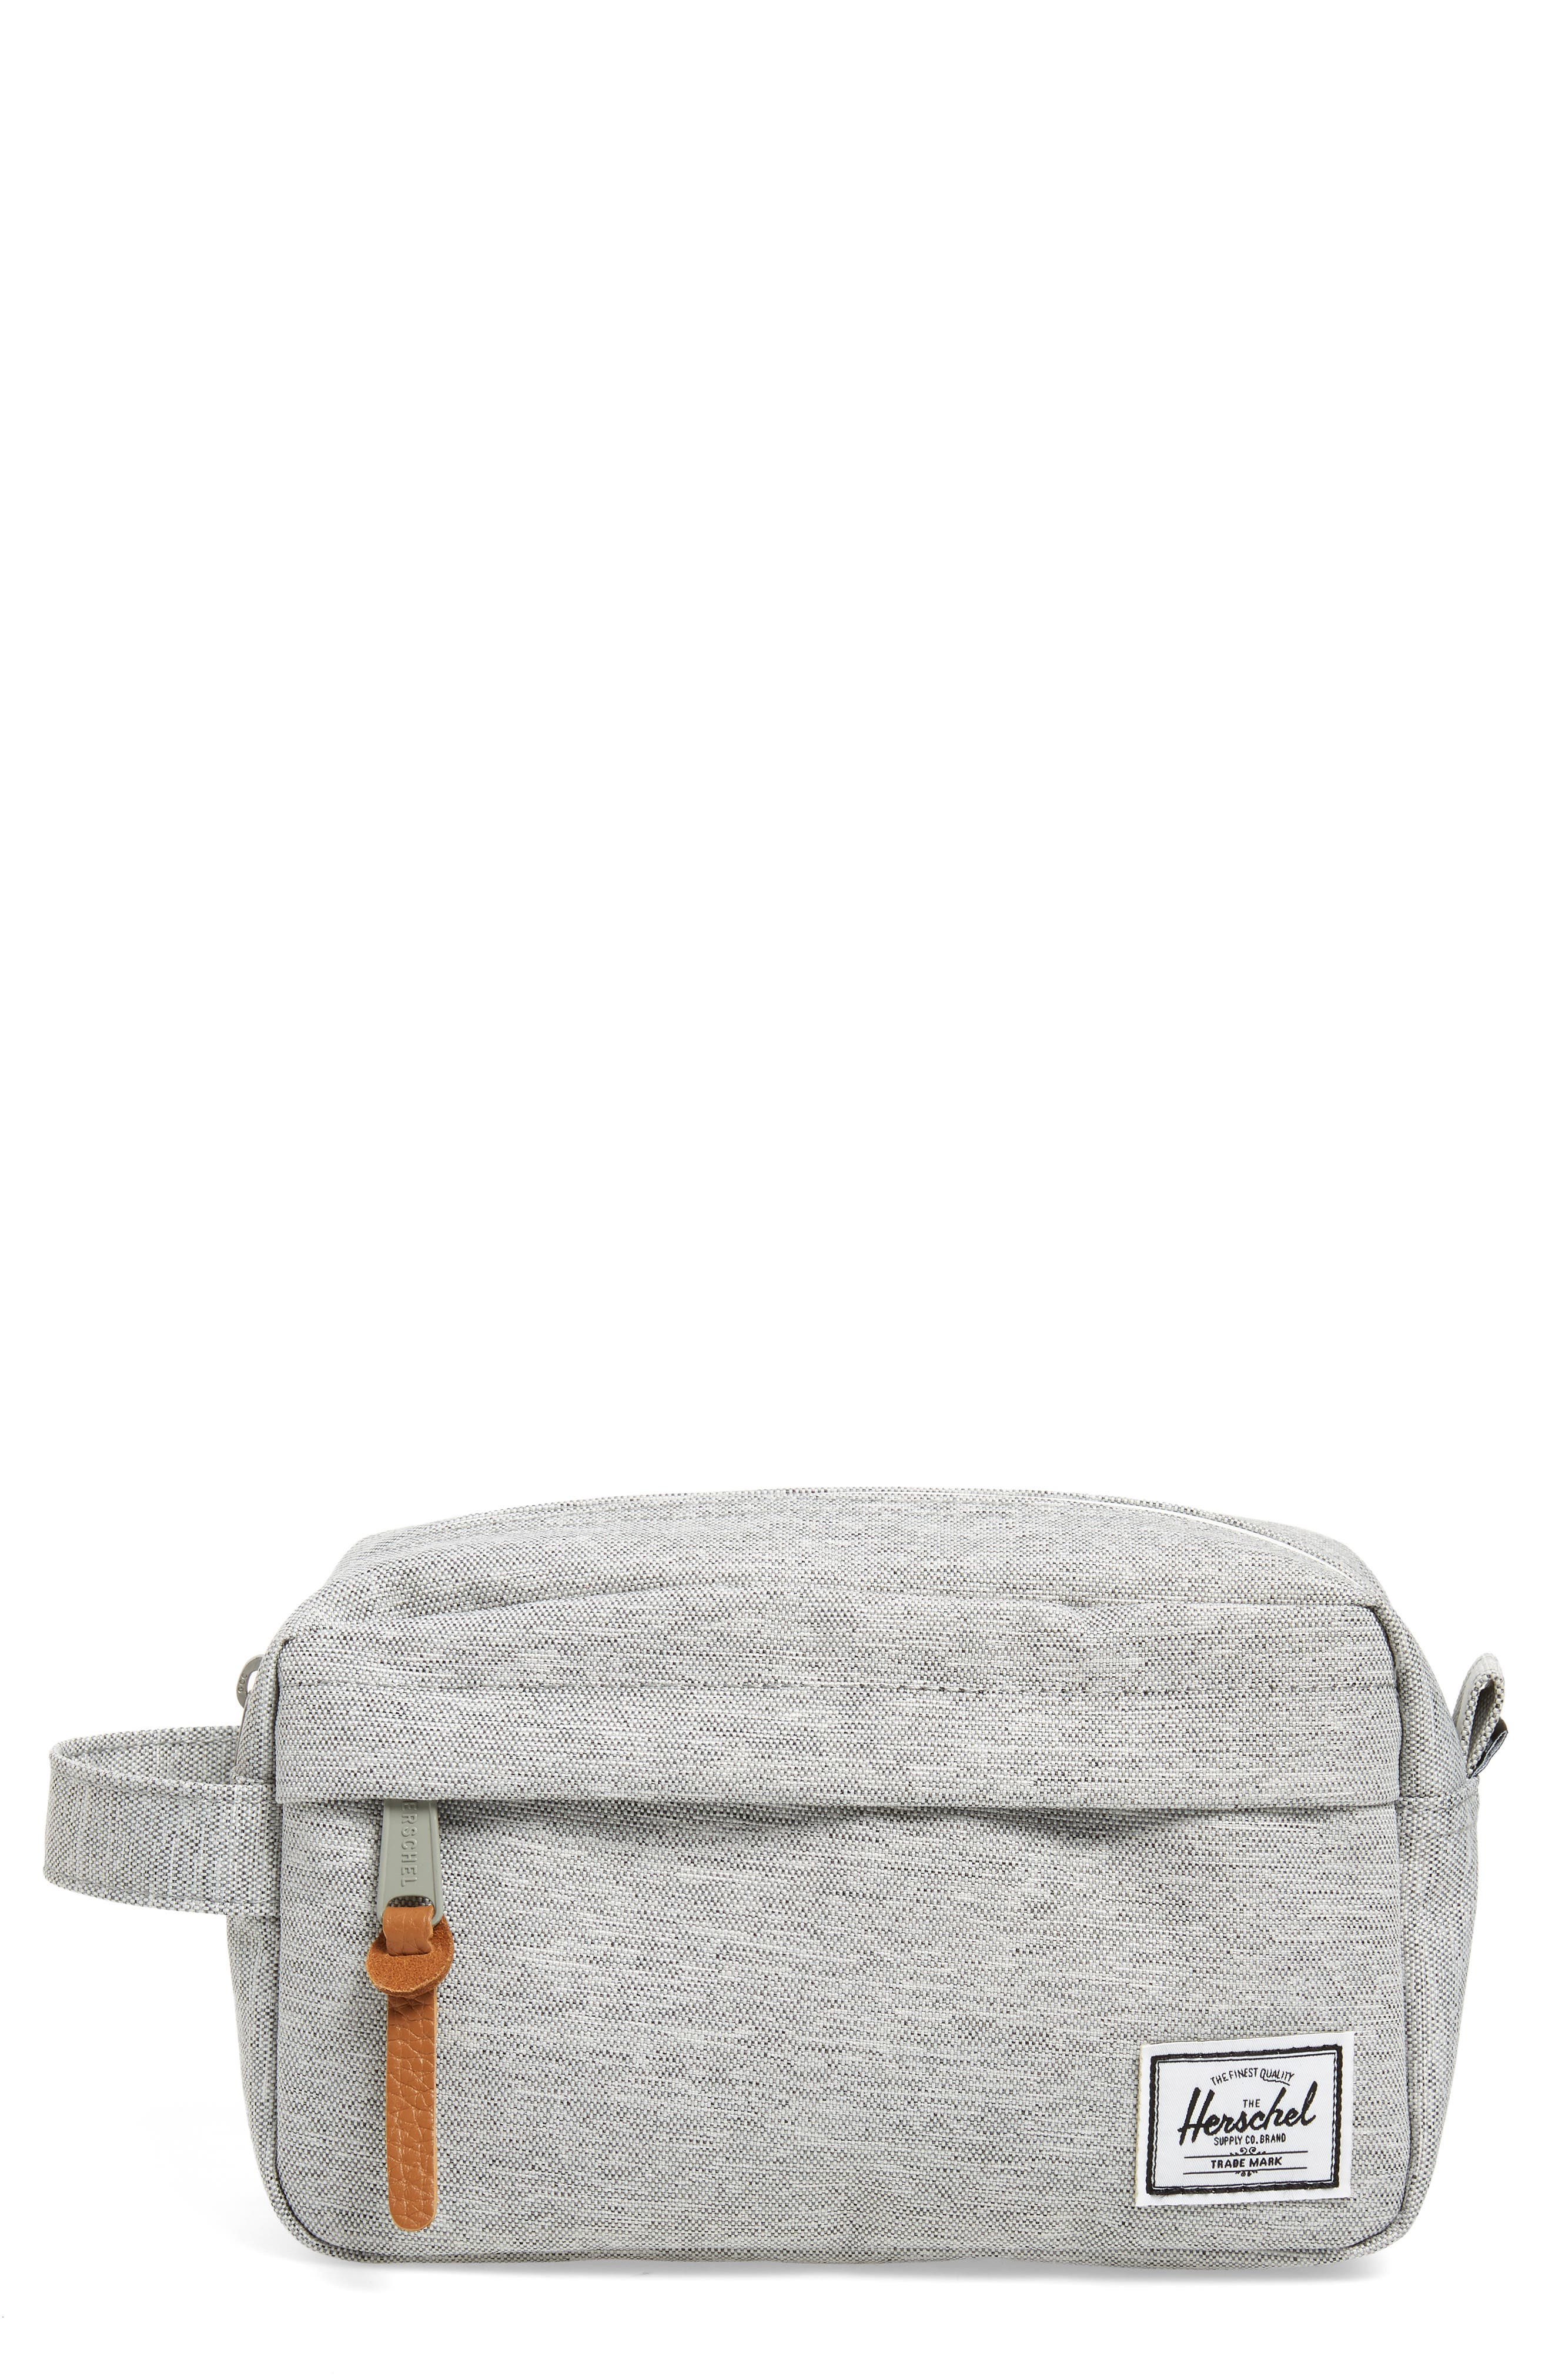 Chapter Carry-On Travel Kit,                             Main thumbnail 1, color,                             Light Grey Crosshatch